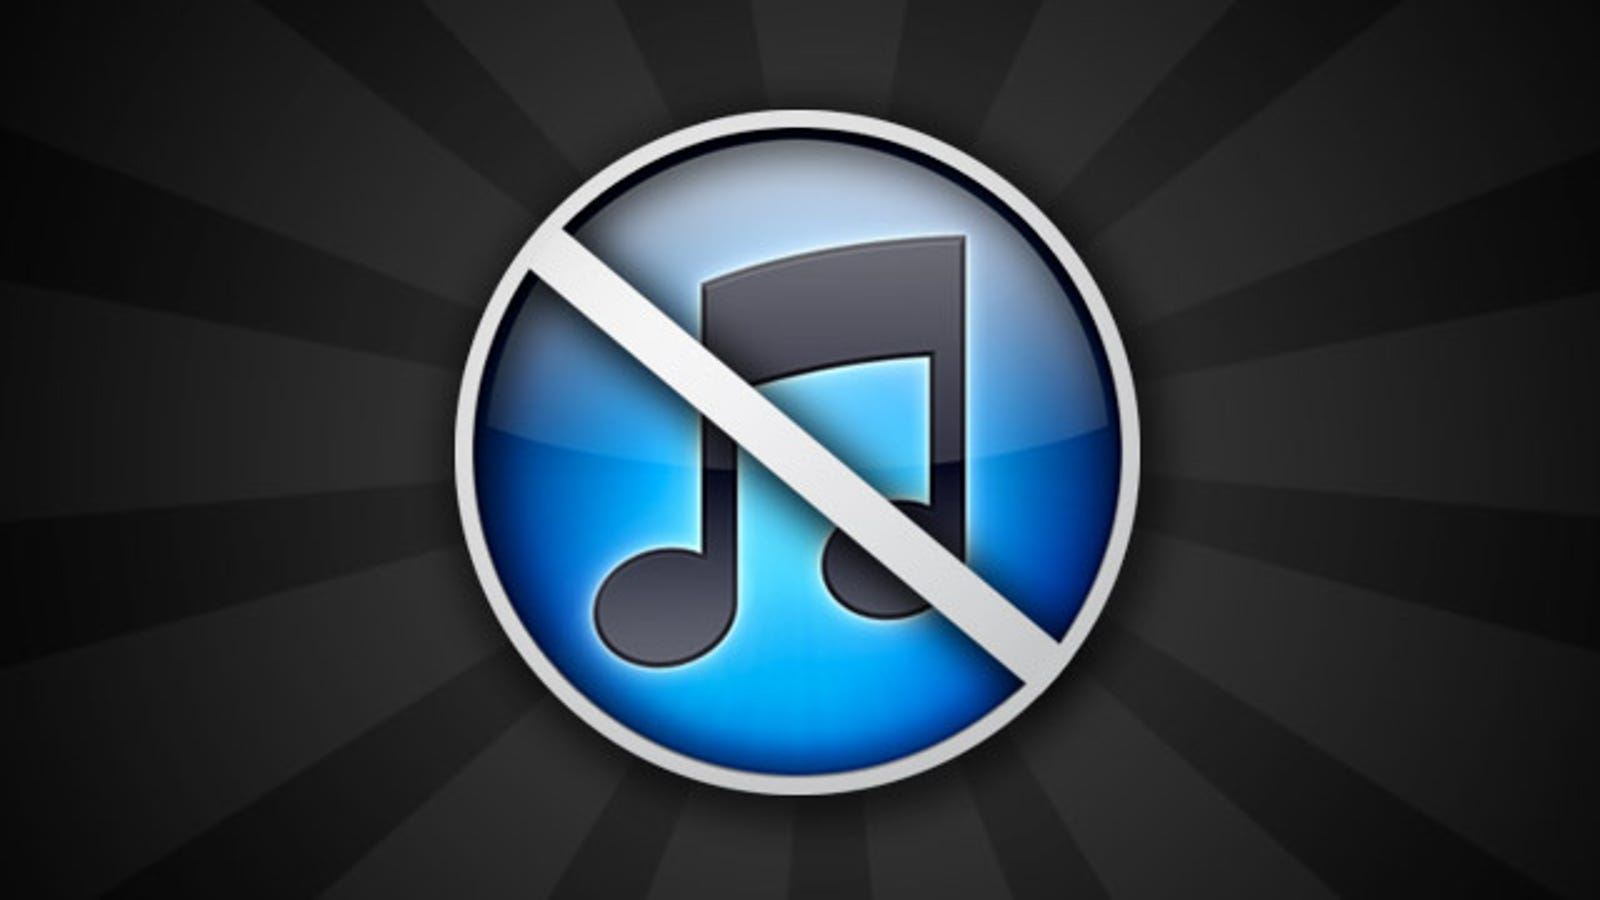 Hack Attack: Add music and movies to your iPod from any computer